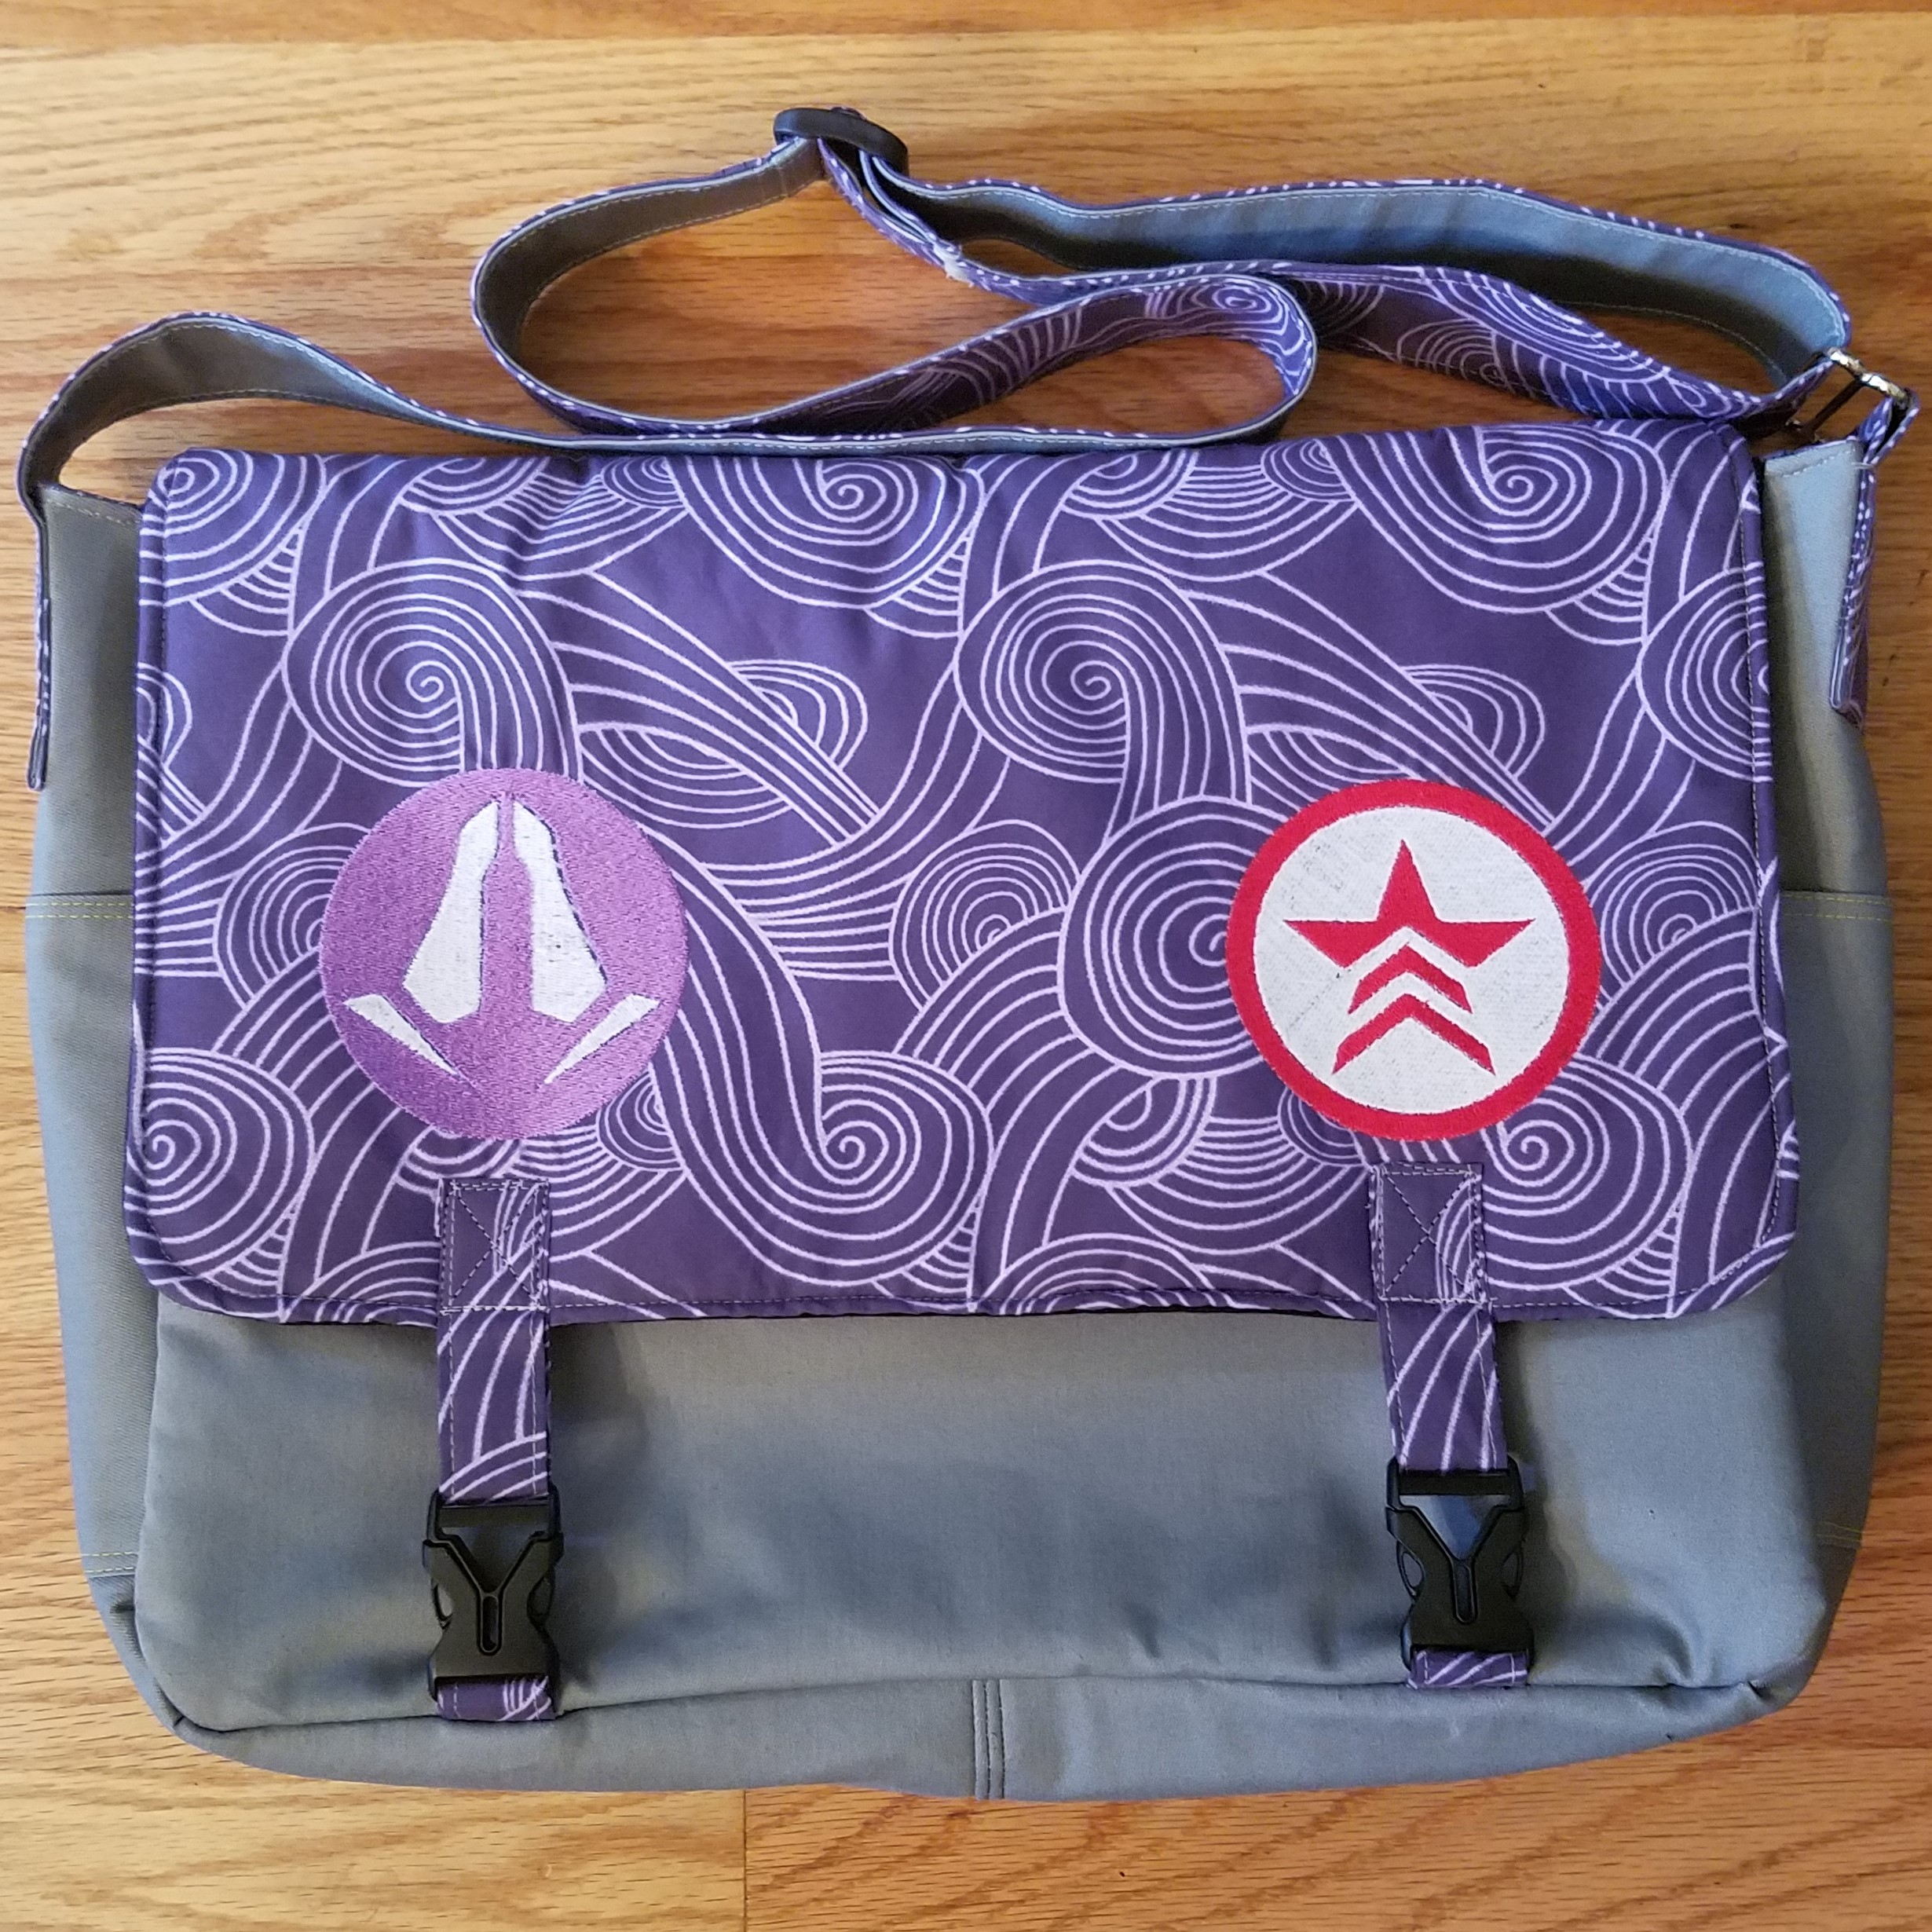 Tock Custom - Mass Effect Tali Bag